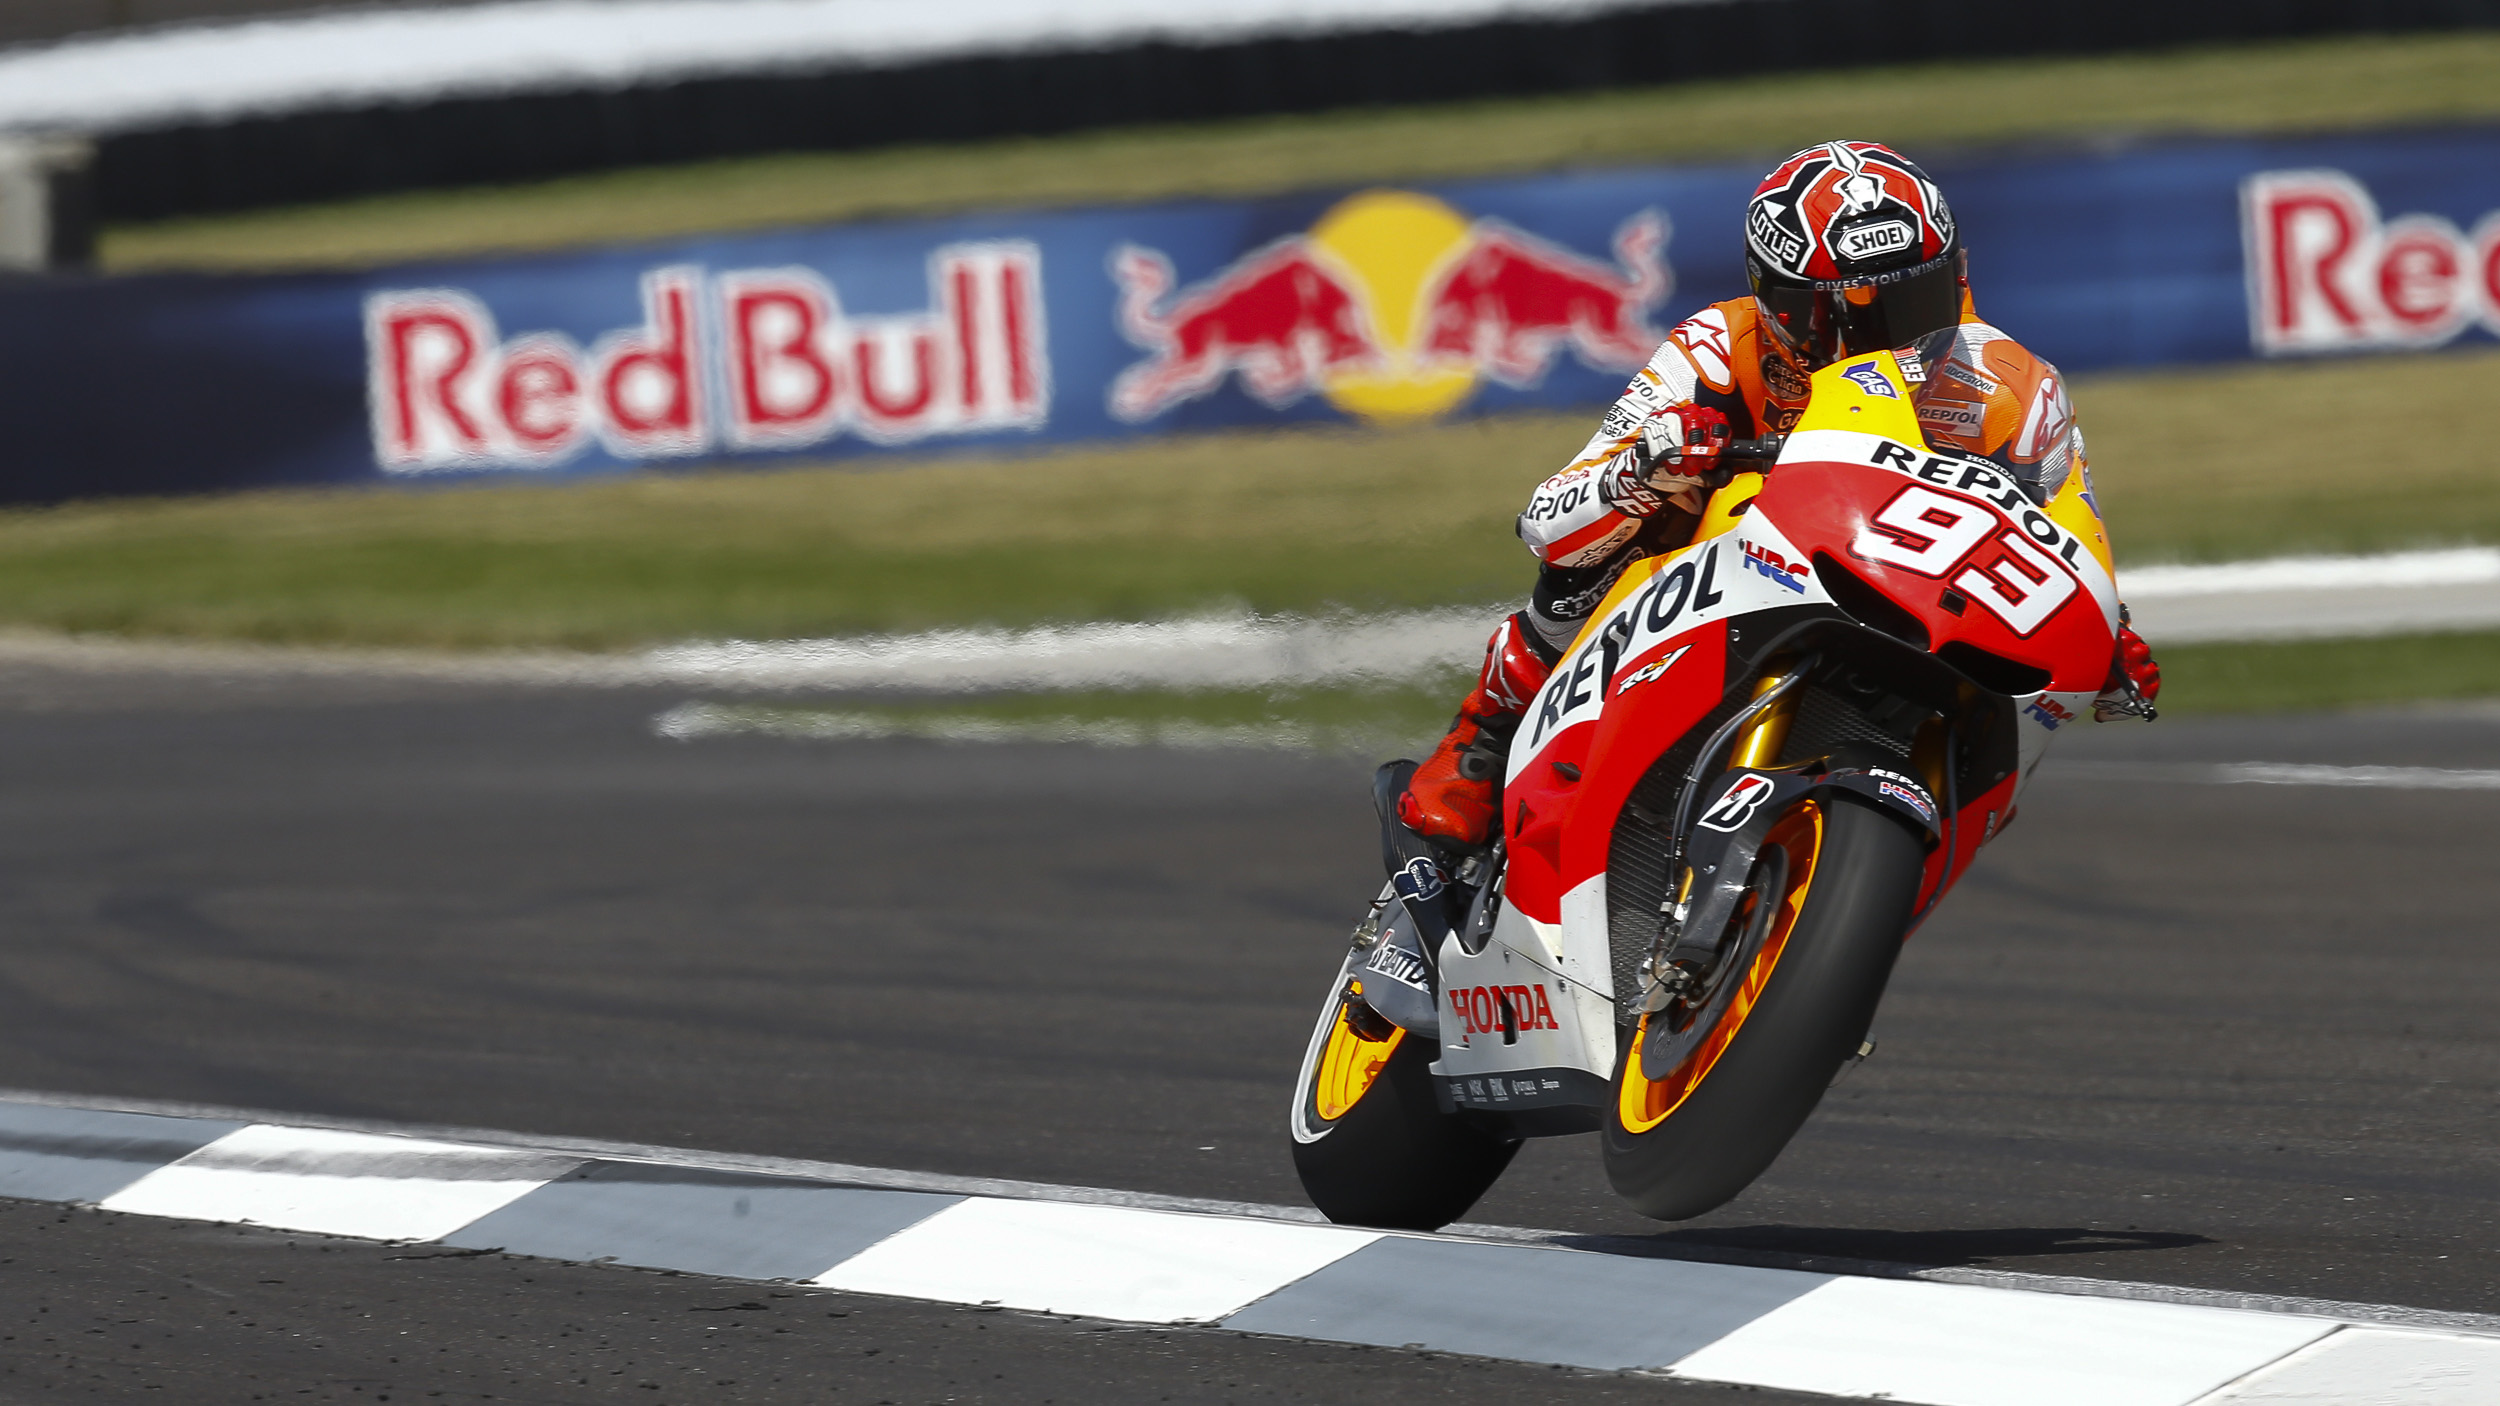 Marc-Marquez-93-Wallpapers-hd-Honda-Repsol-07